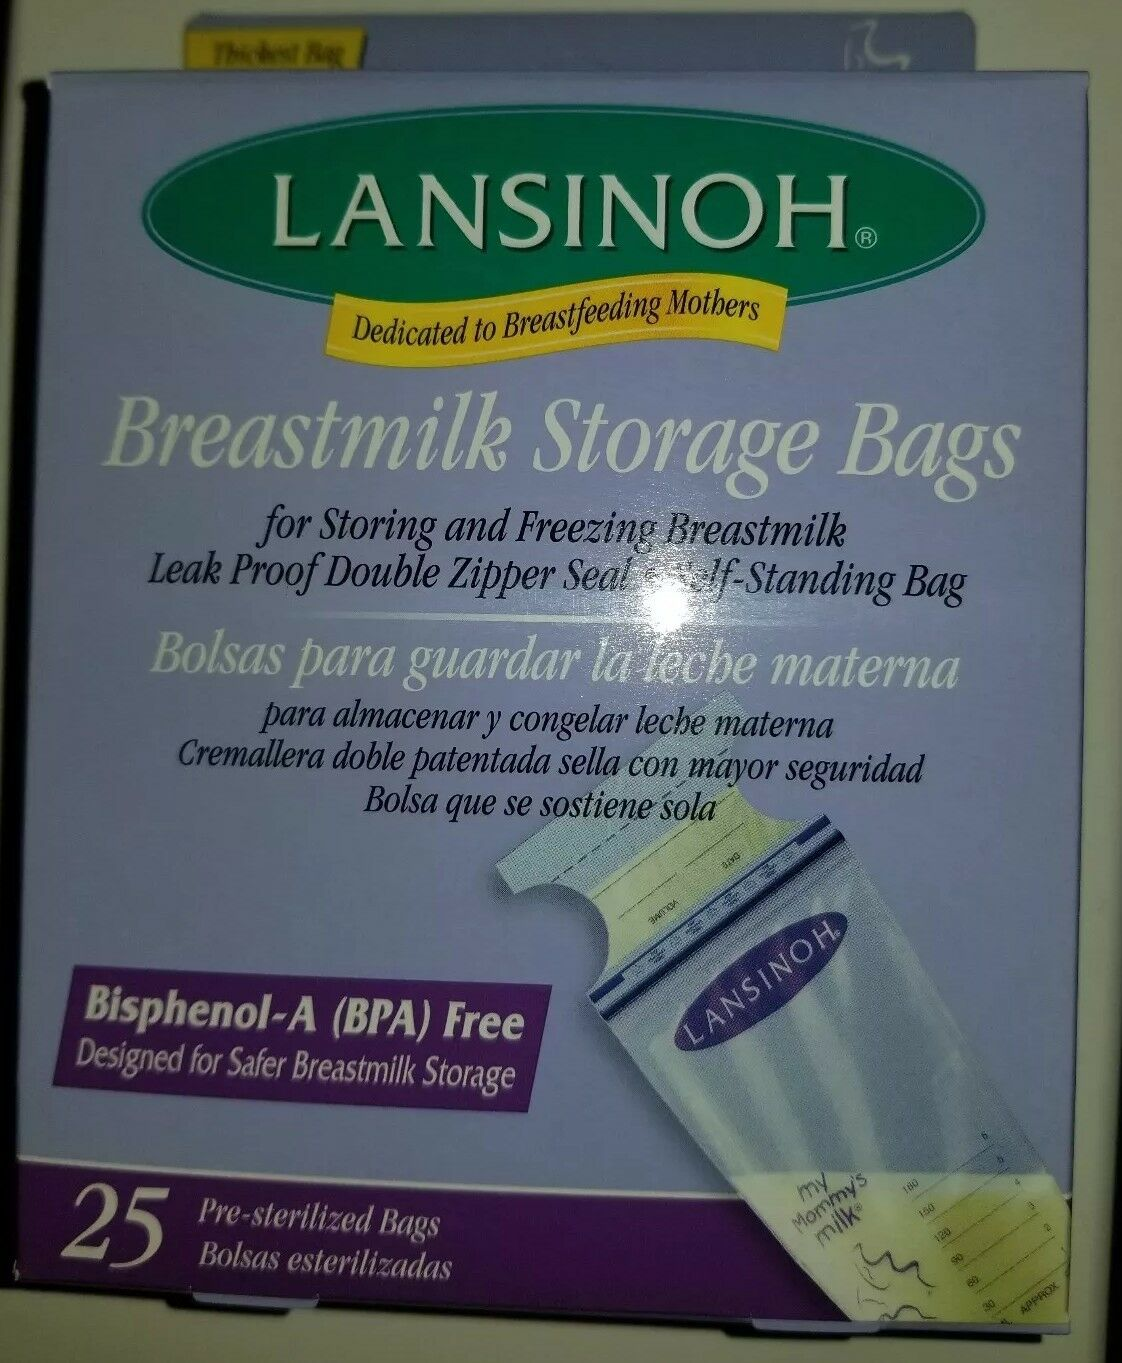 LANSINOH BREASTMILK FREEZER STORAGE BAGS 25 CT #20435